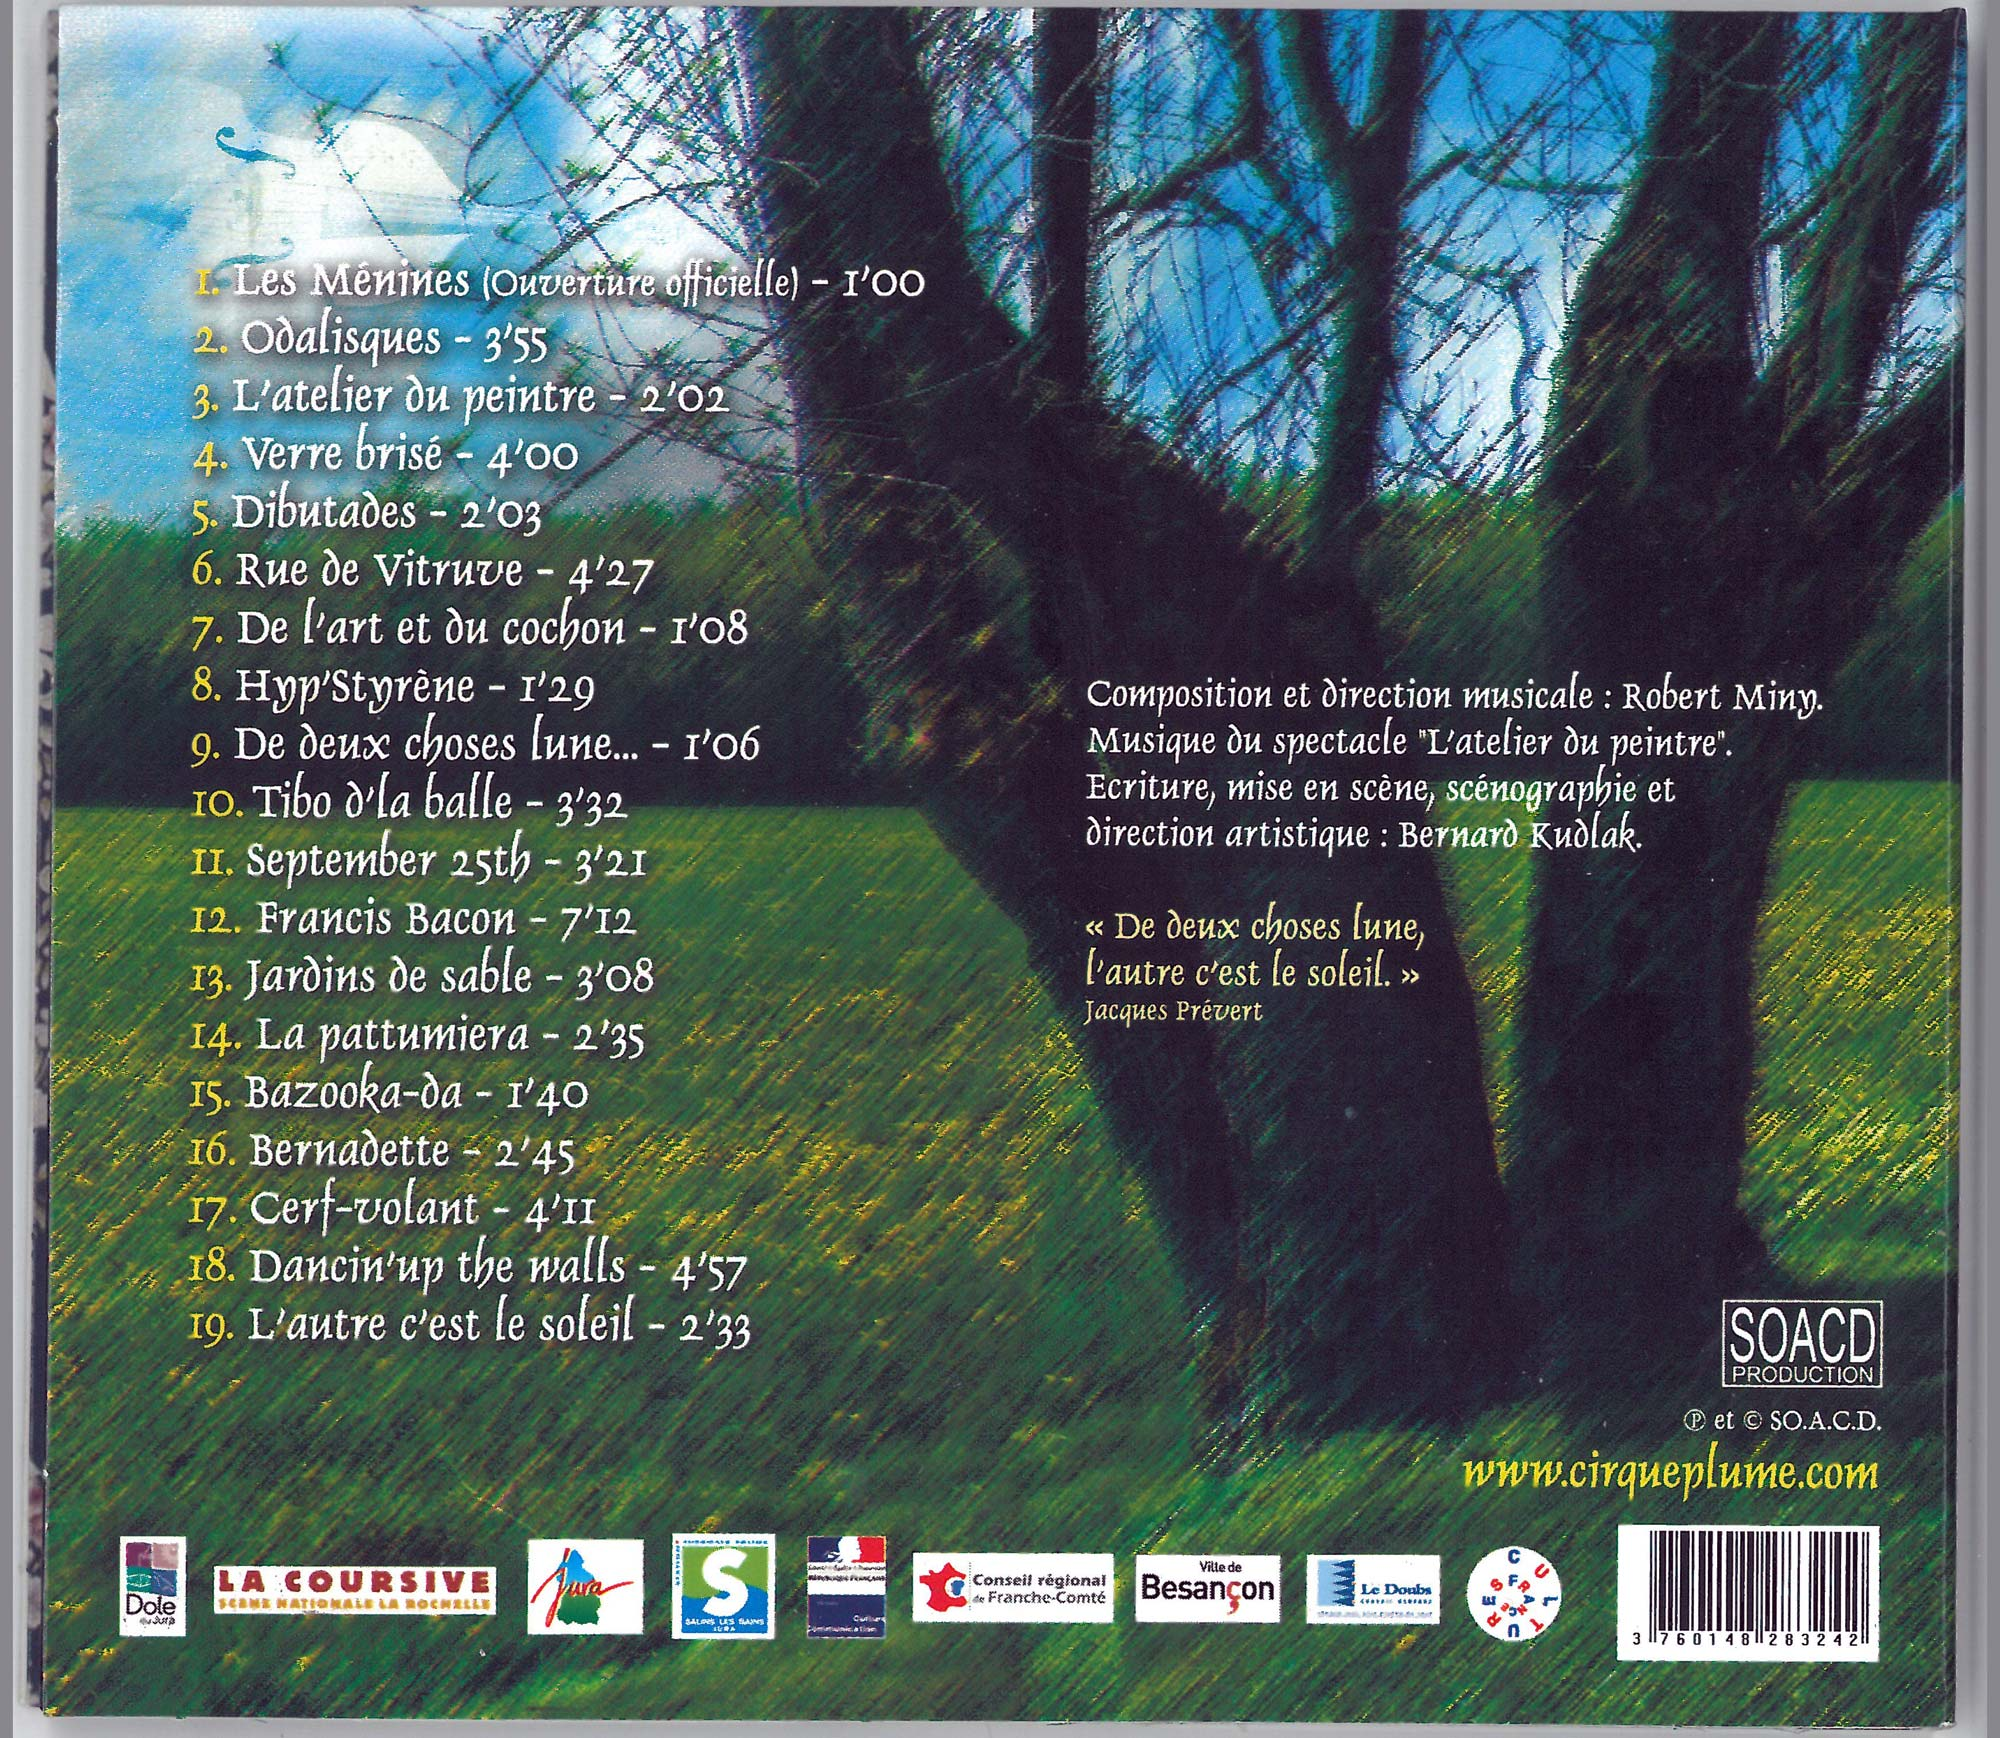 Back cover - CD L'atelier du peintre